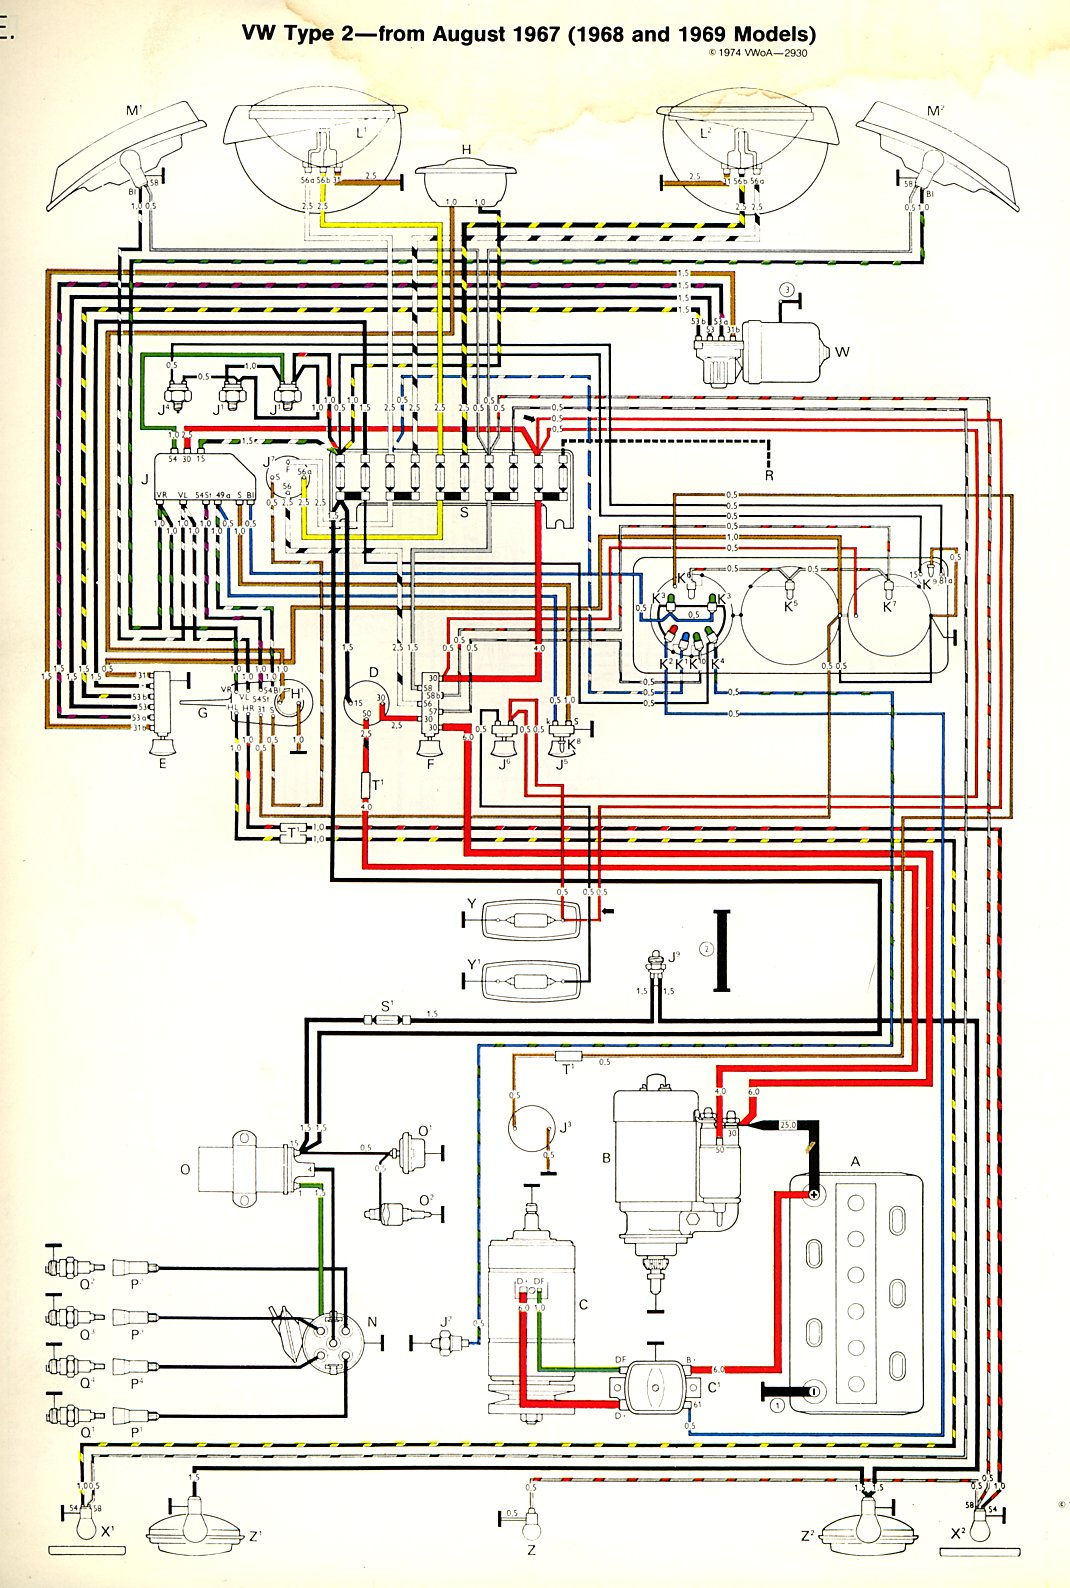 1969 Vw Squareback Wiring Diagram Schematic Daily Update 61 Willys Utility Wagon Bus Harness Data Diagrams